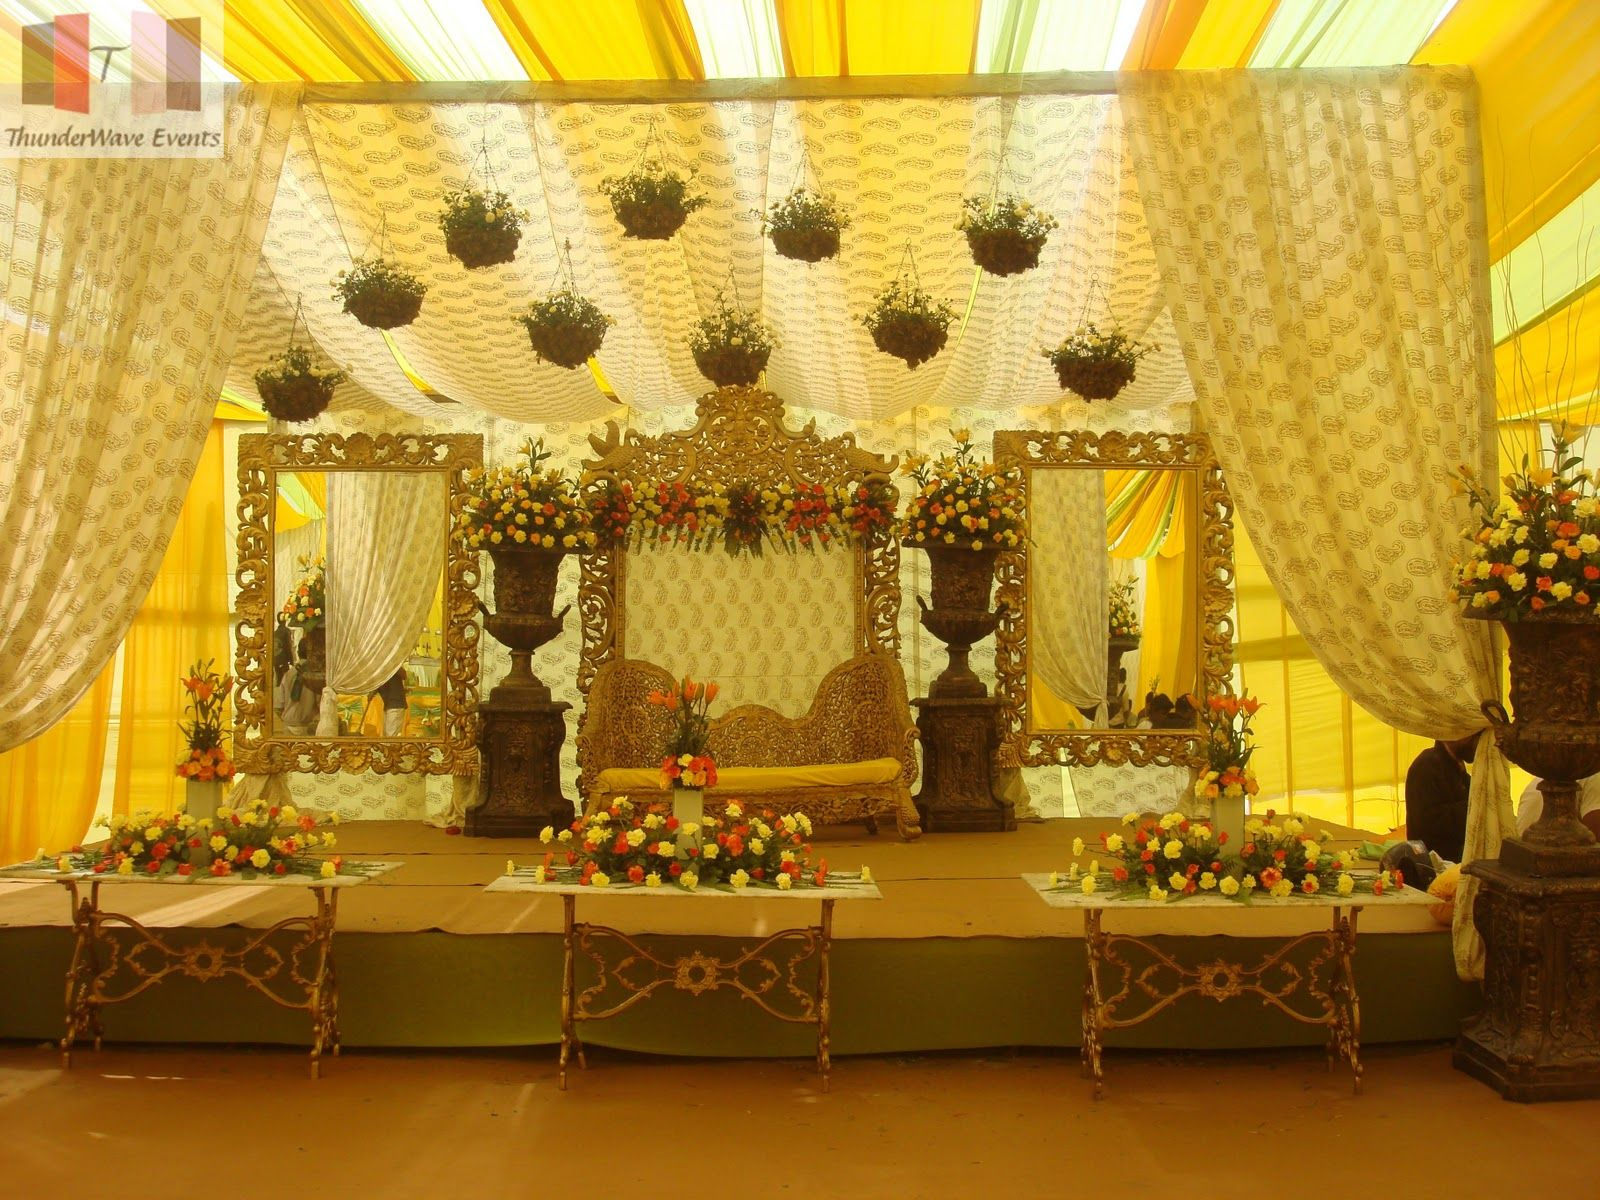 Wedding Stage Decoration Price : A simple stage decor with yellow drapes gold seats and